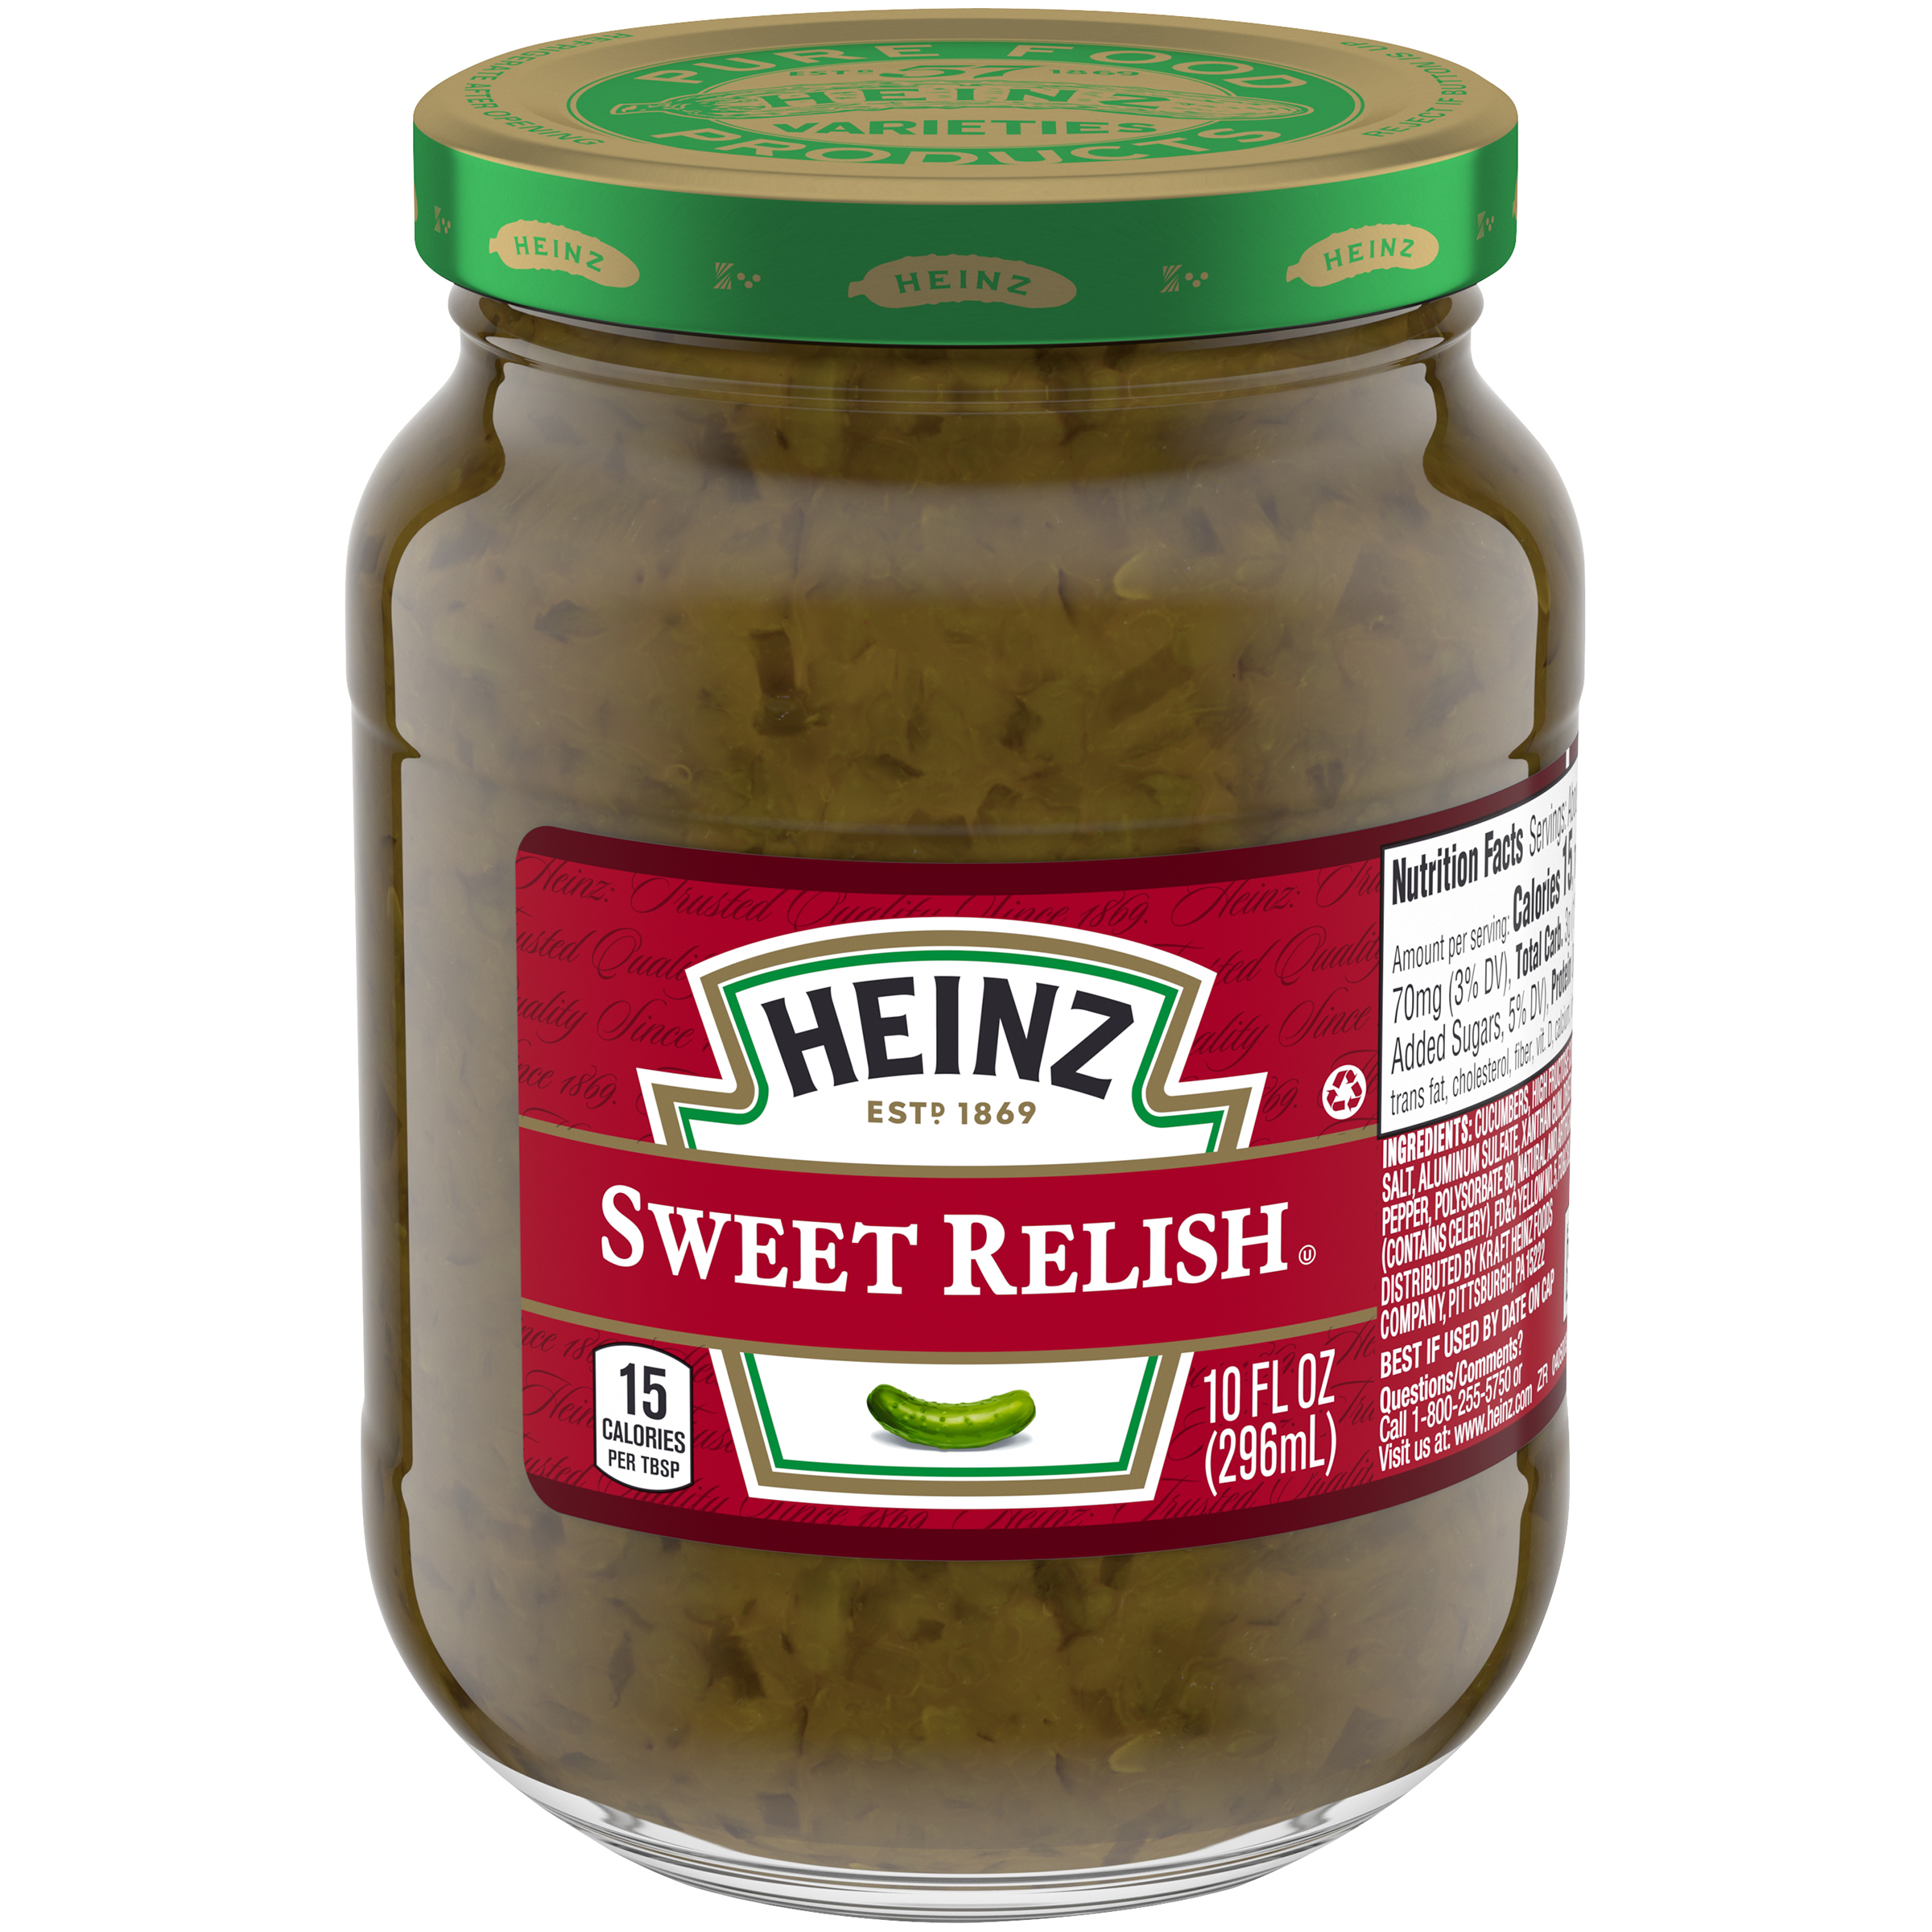 Heinz Sweet Relish 10 fl oz Jar image